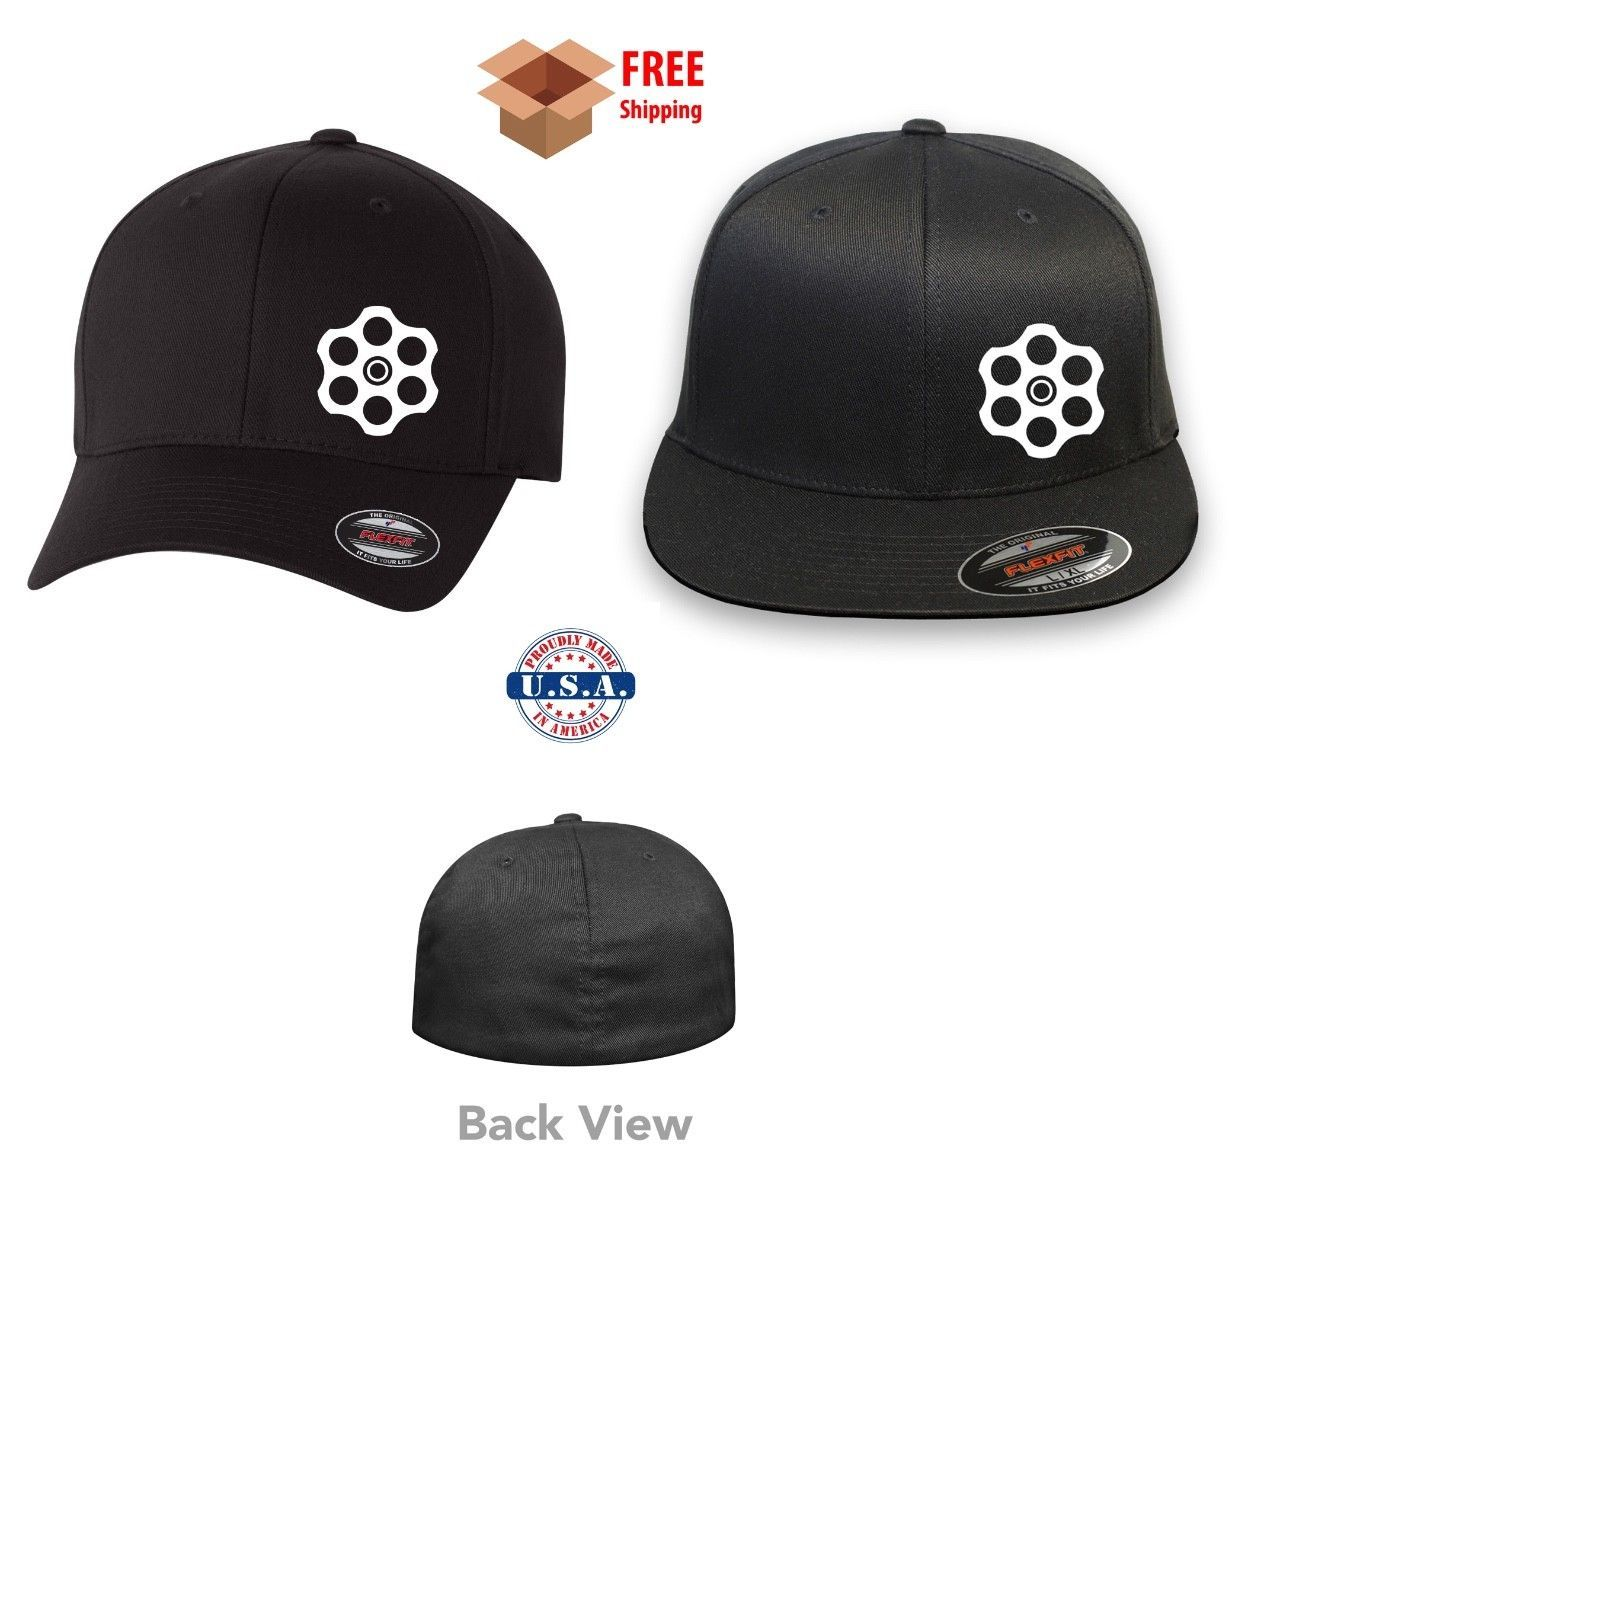 Primary image for GUN CHAMBER REVOLVER 2ND AMENDMENT  FLEXFIT HAT *FREE SHIPPING in BOX*